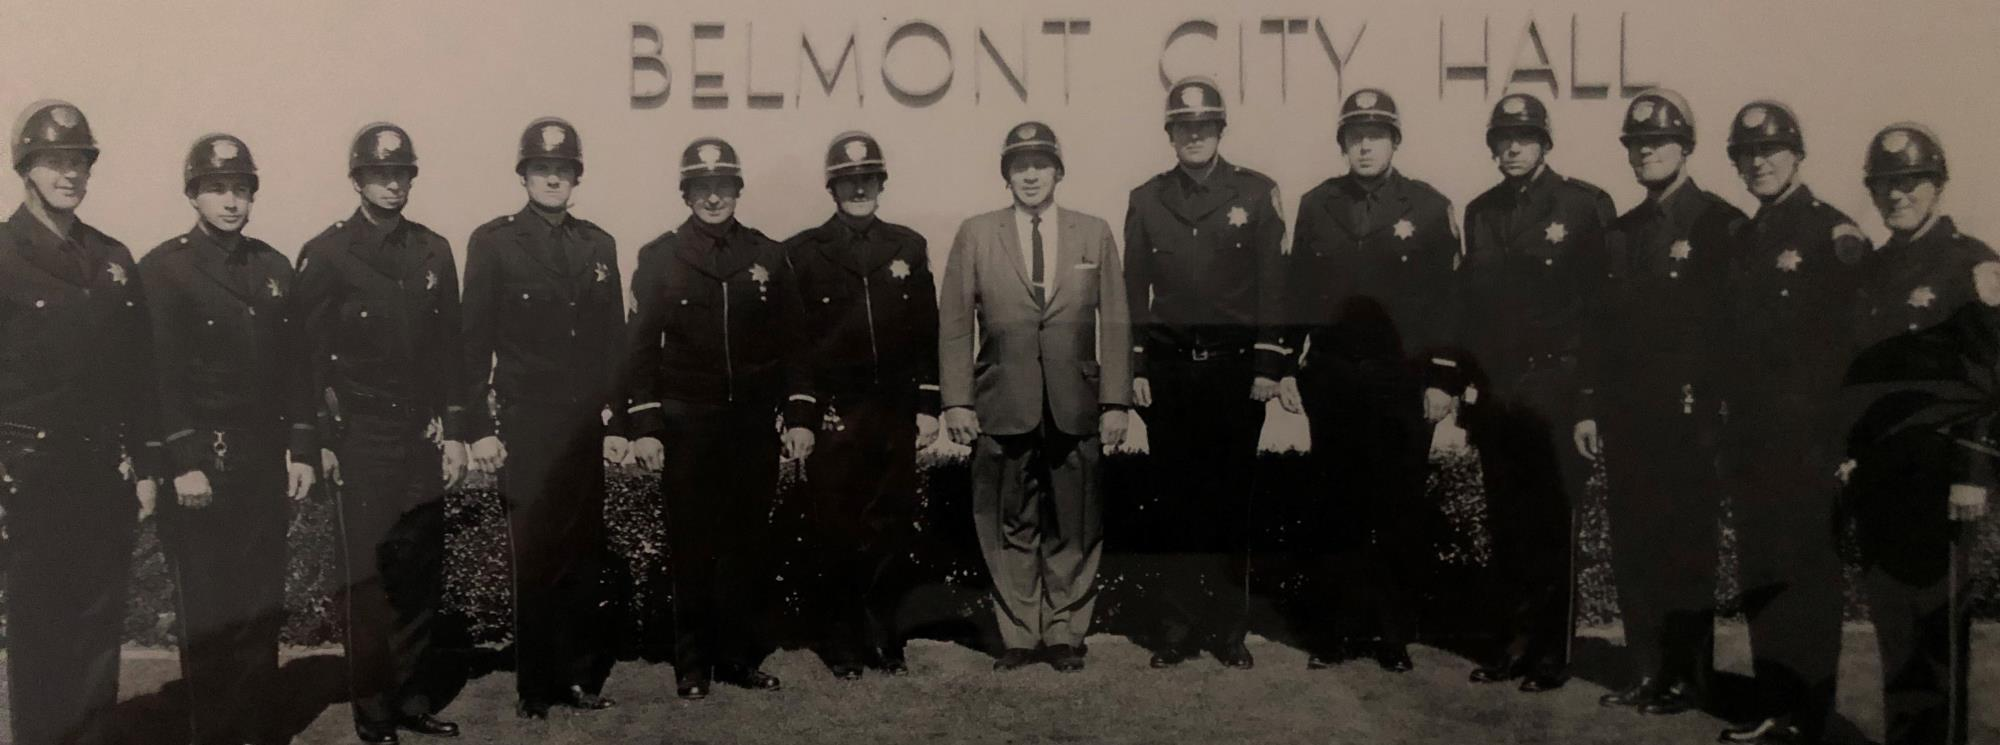 Belmont Officers